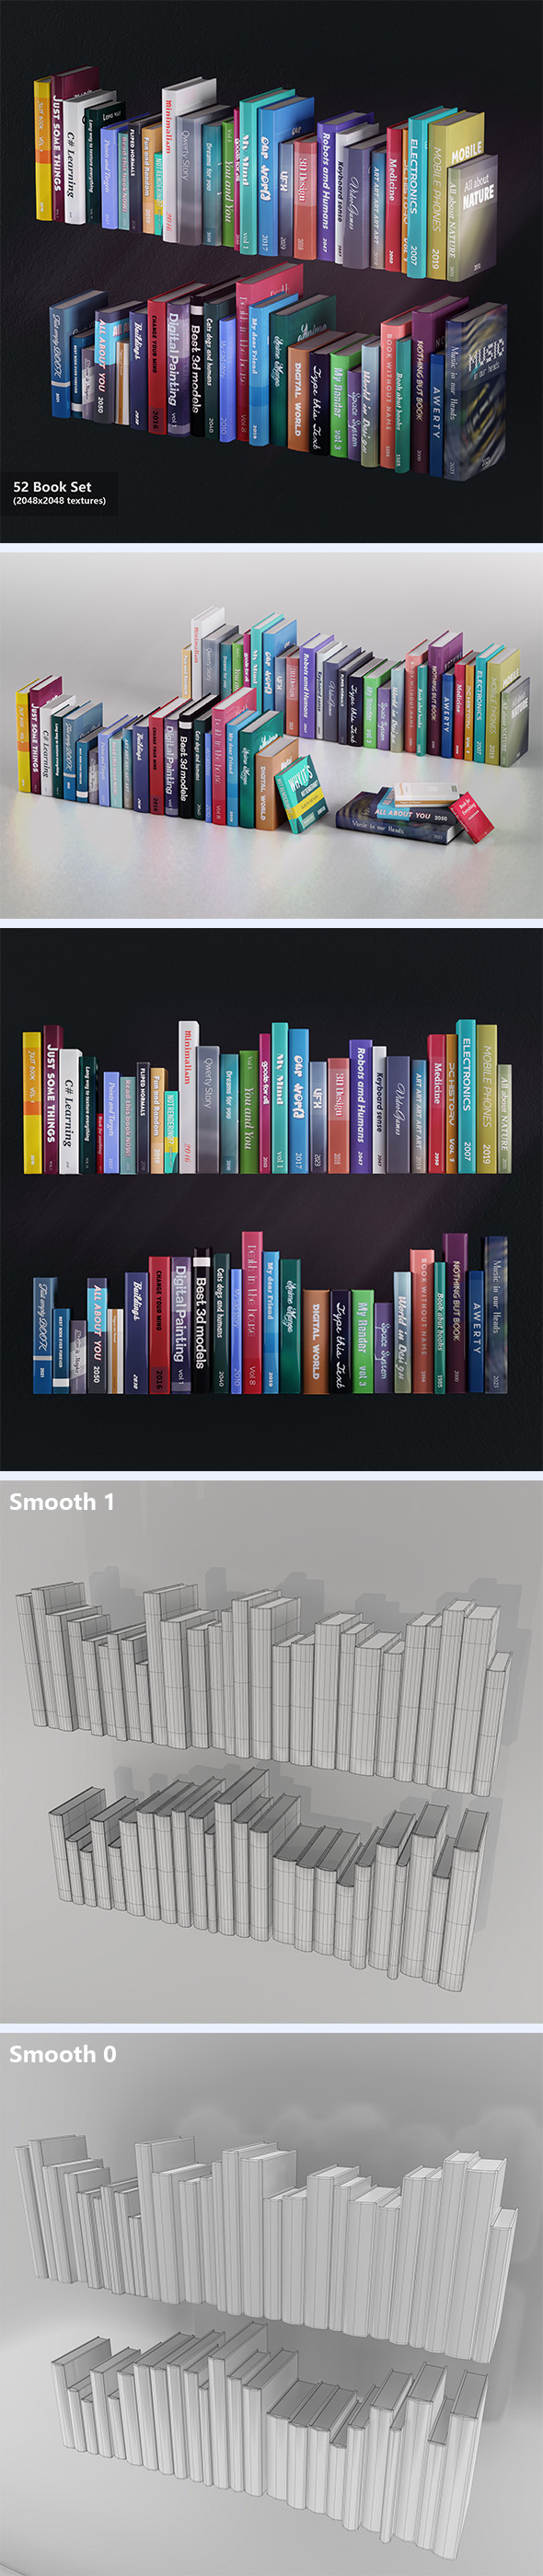 52 Books Set - 3DOcean Item for Sale